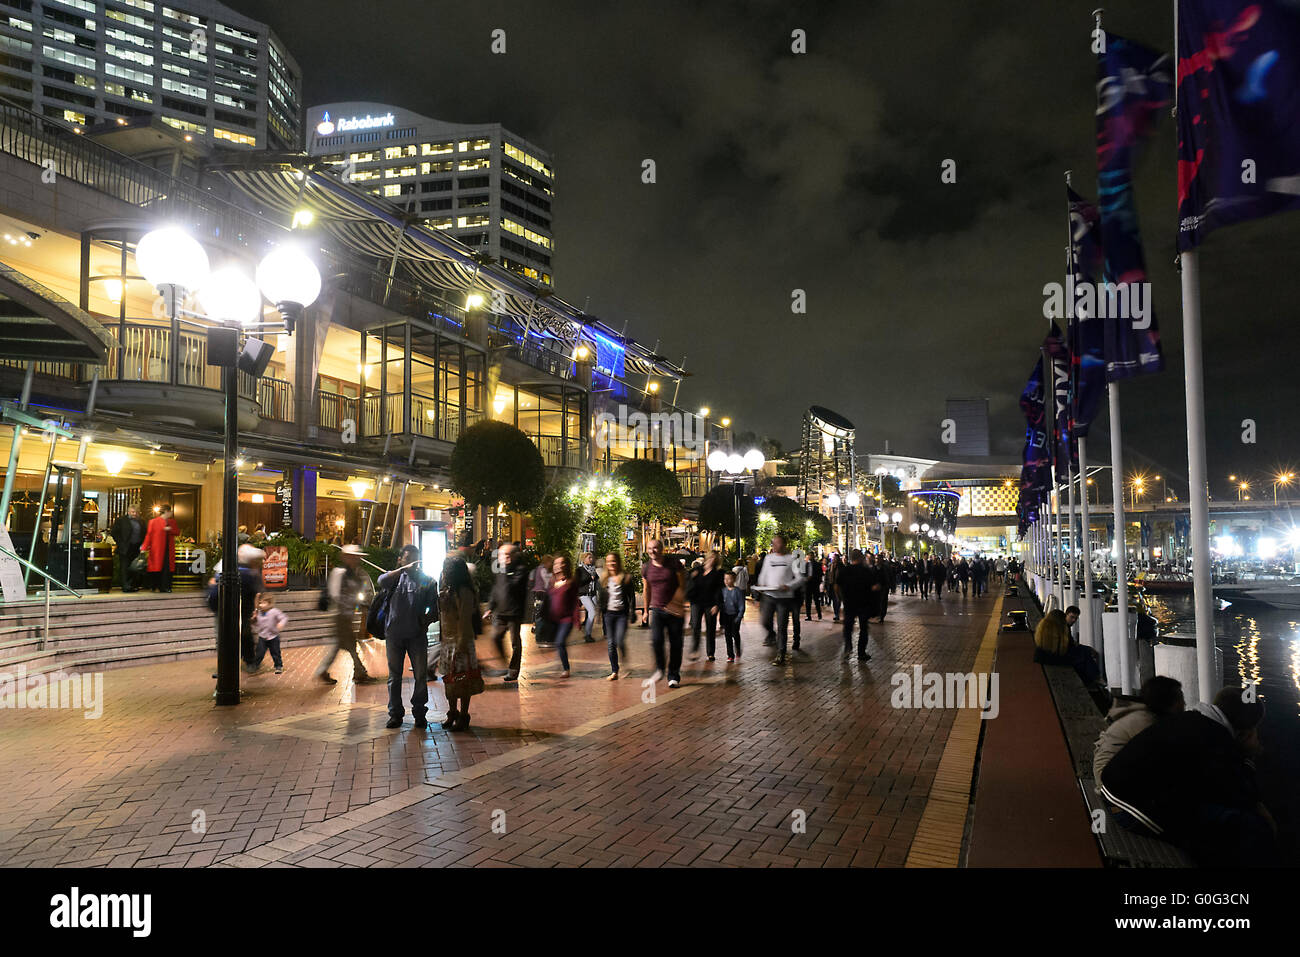 Darling Harbour at night, Sydney, New South Wales, Australia - Stock Image